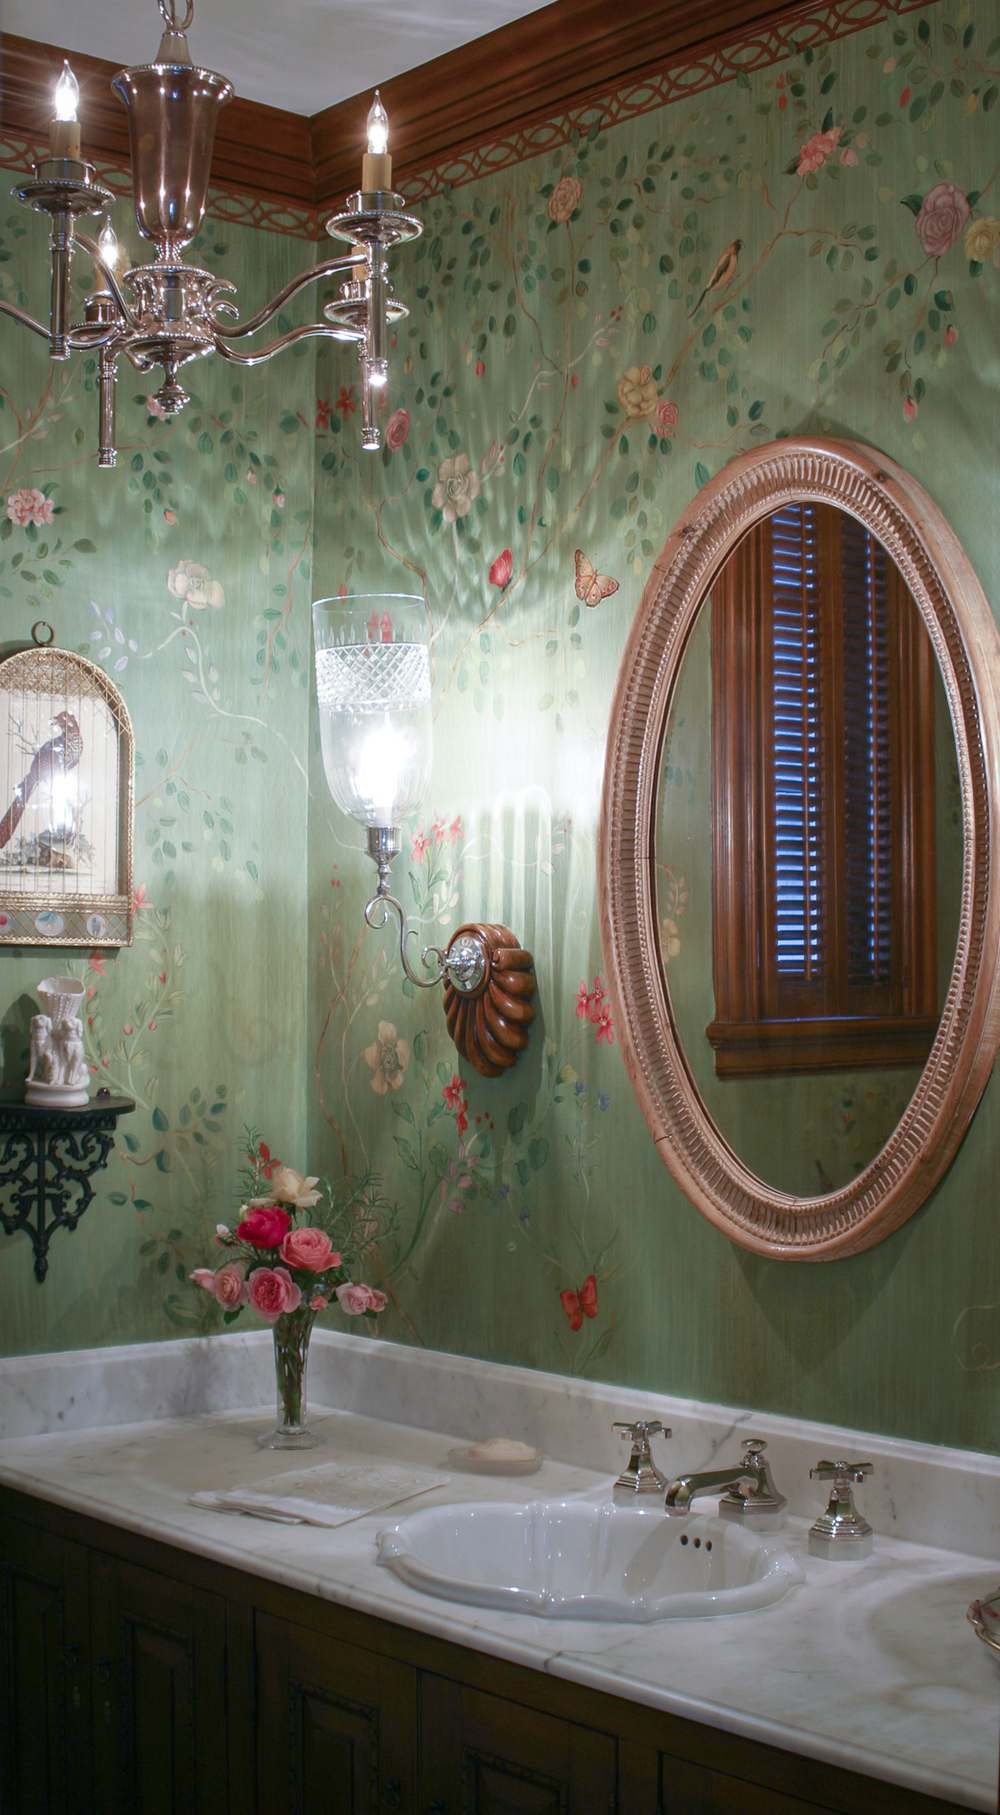 Decorative Powder Room Mural